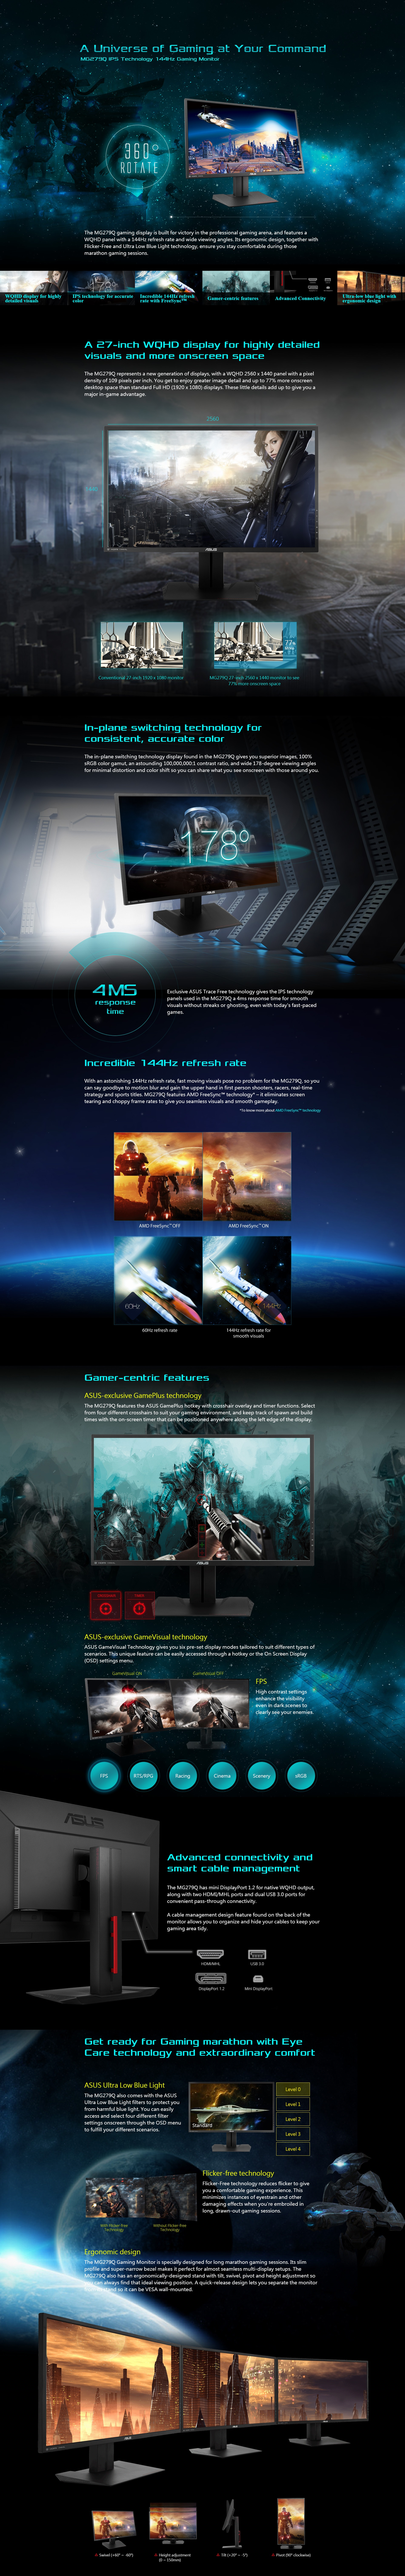 """A large marketing image providing additional information about the product ASUS MG279Q 27"""" WQHD FreeSync 144Hz 4MS IPS LED Gaming Monitor - Additional alt info not provided"""